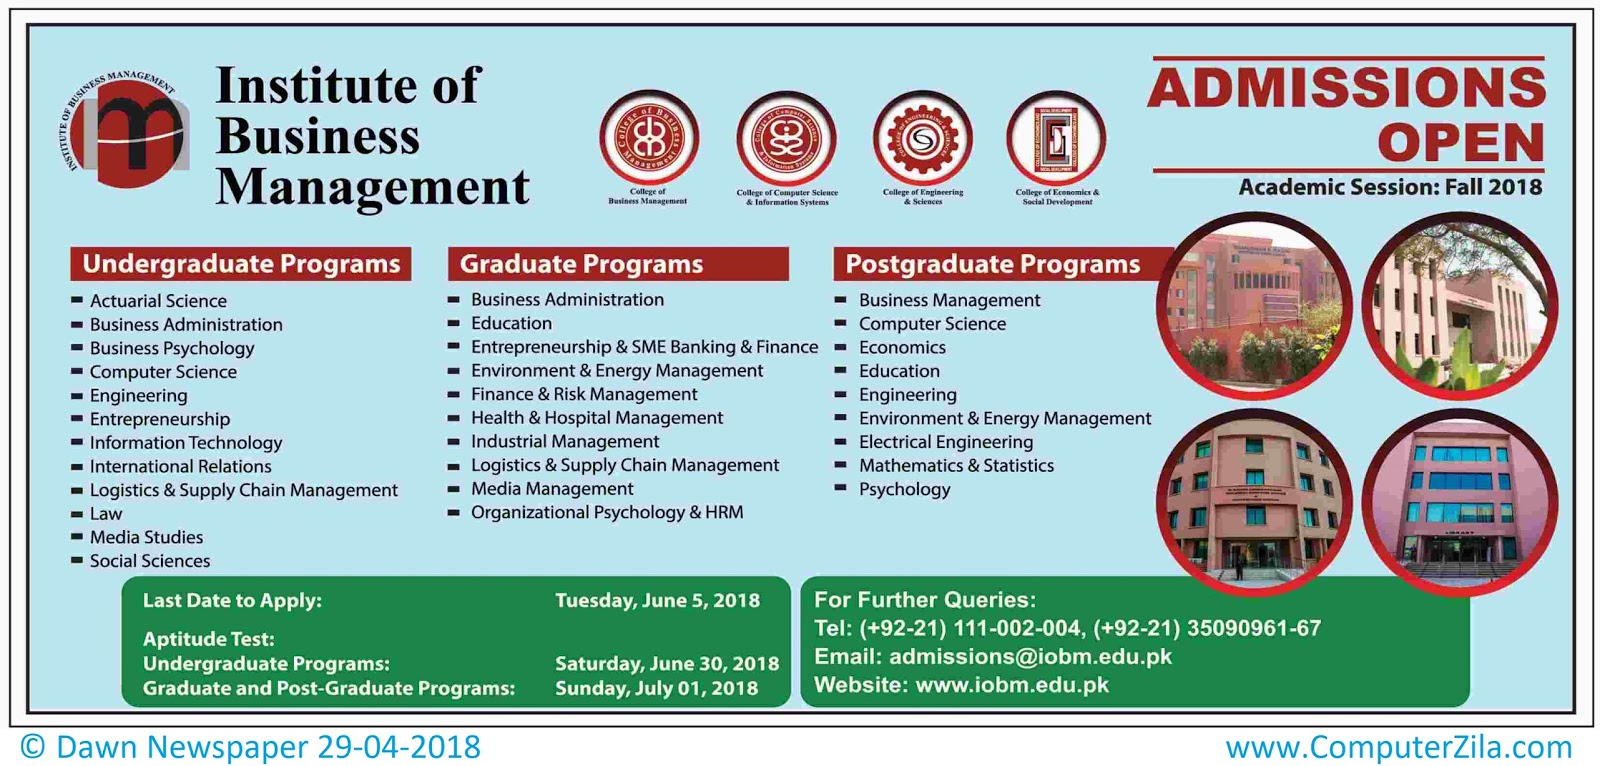 Institute of Business Management Admissions Fall 2018